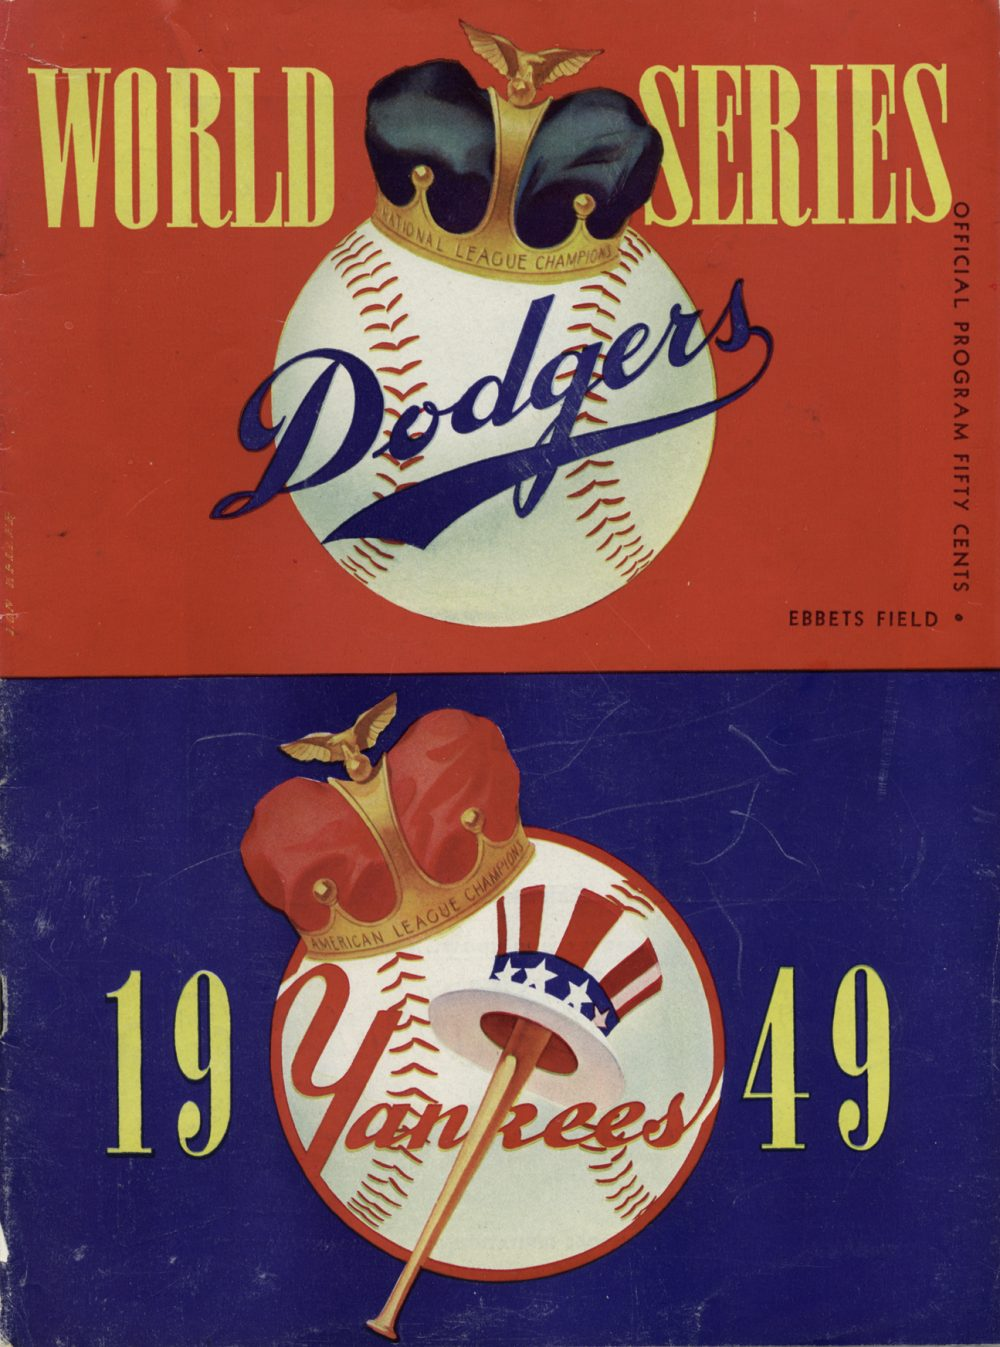 world series dodgers 1949 vintage retro baseball